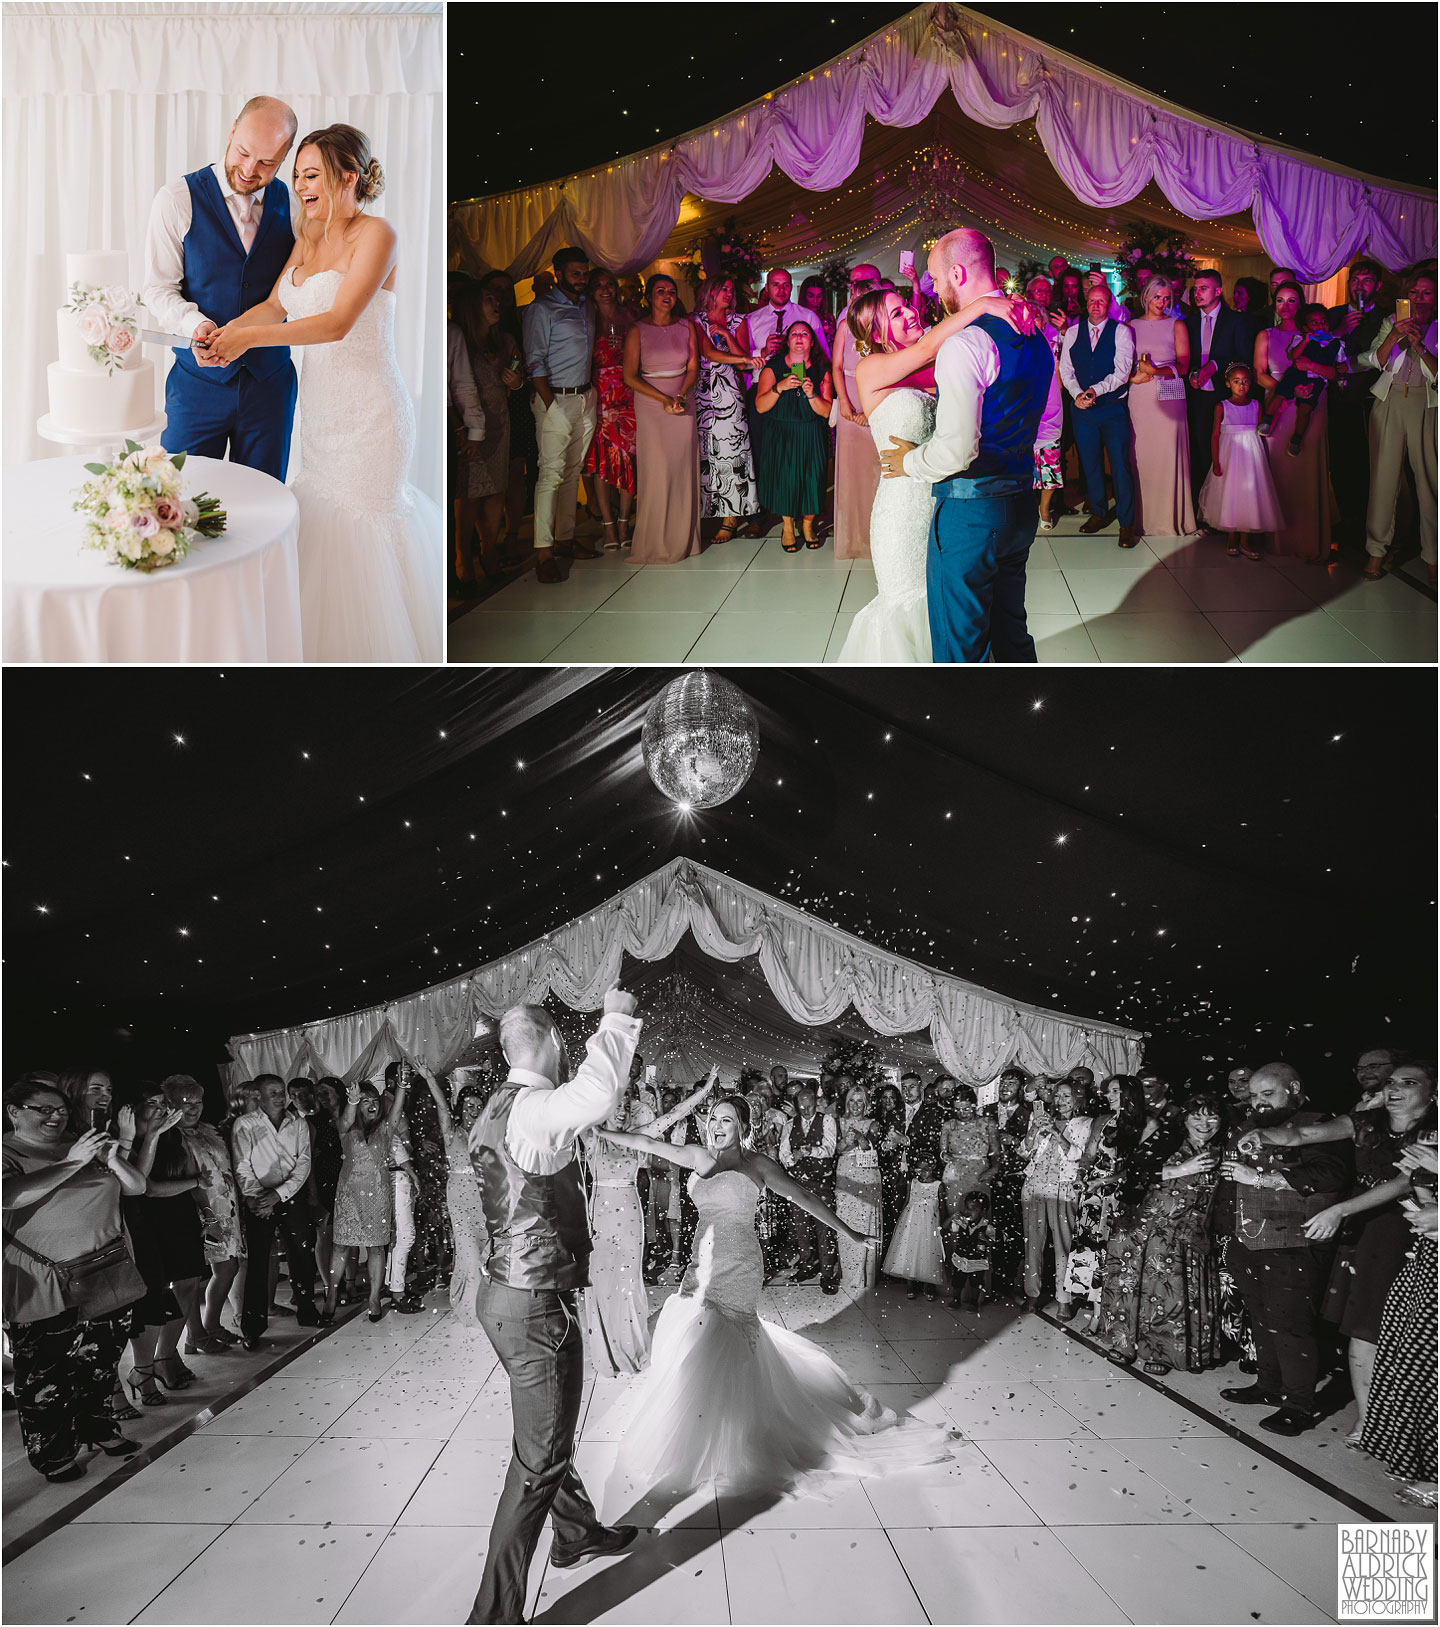 First Dance at Priory Cottages in Yorkshire, Wedding photos at Priory Cottages, The Priory Yorkshire